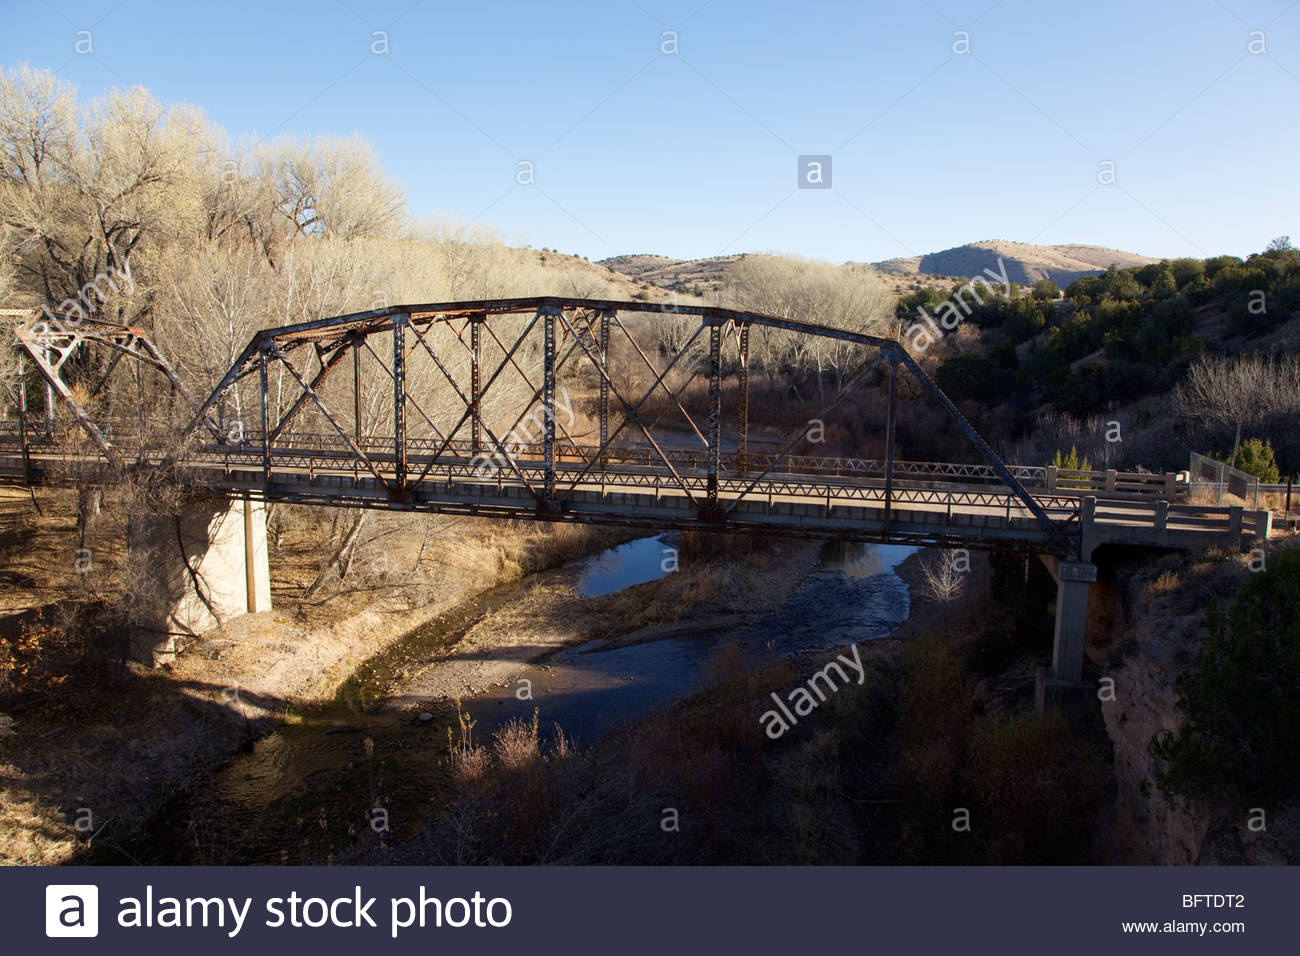 """Old abandoned steel truss highway bridge US 180 over San Francisco River """"New Mexico"""" Stock Photo"""